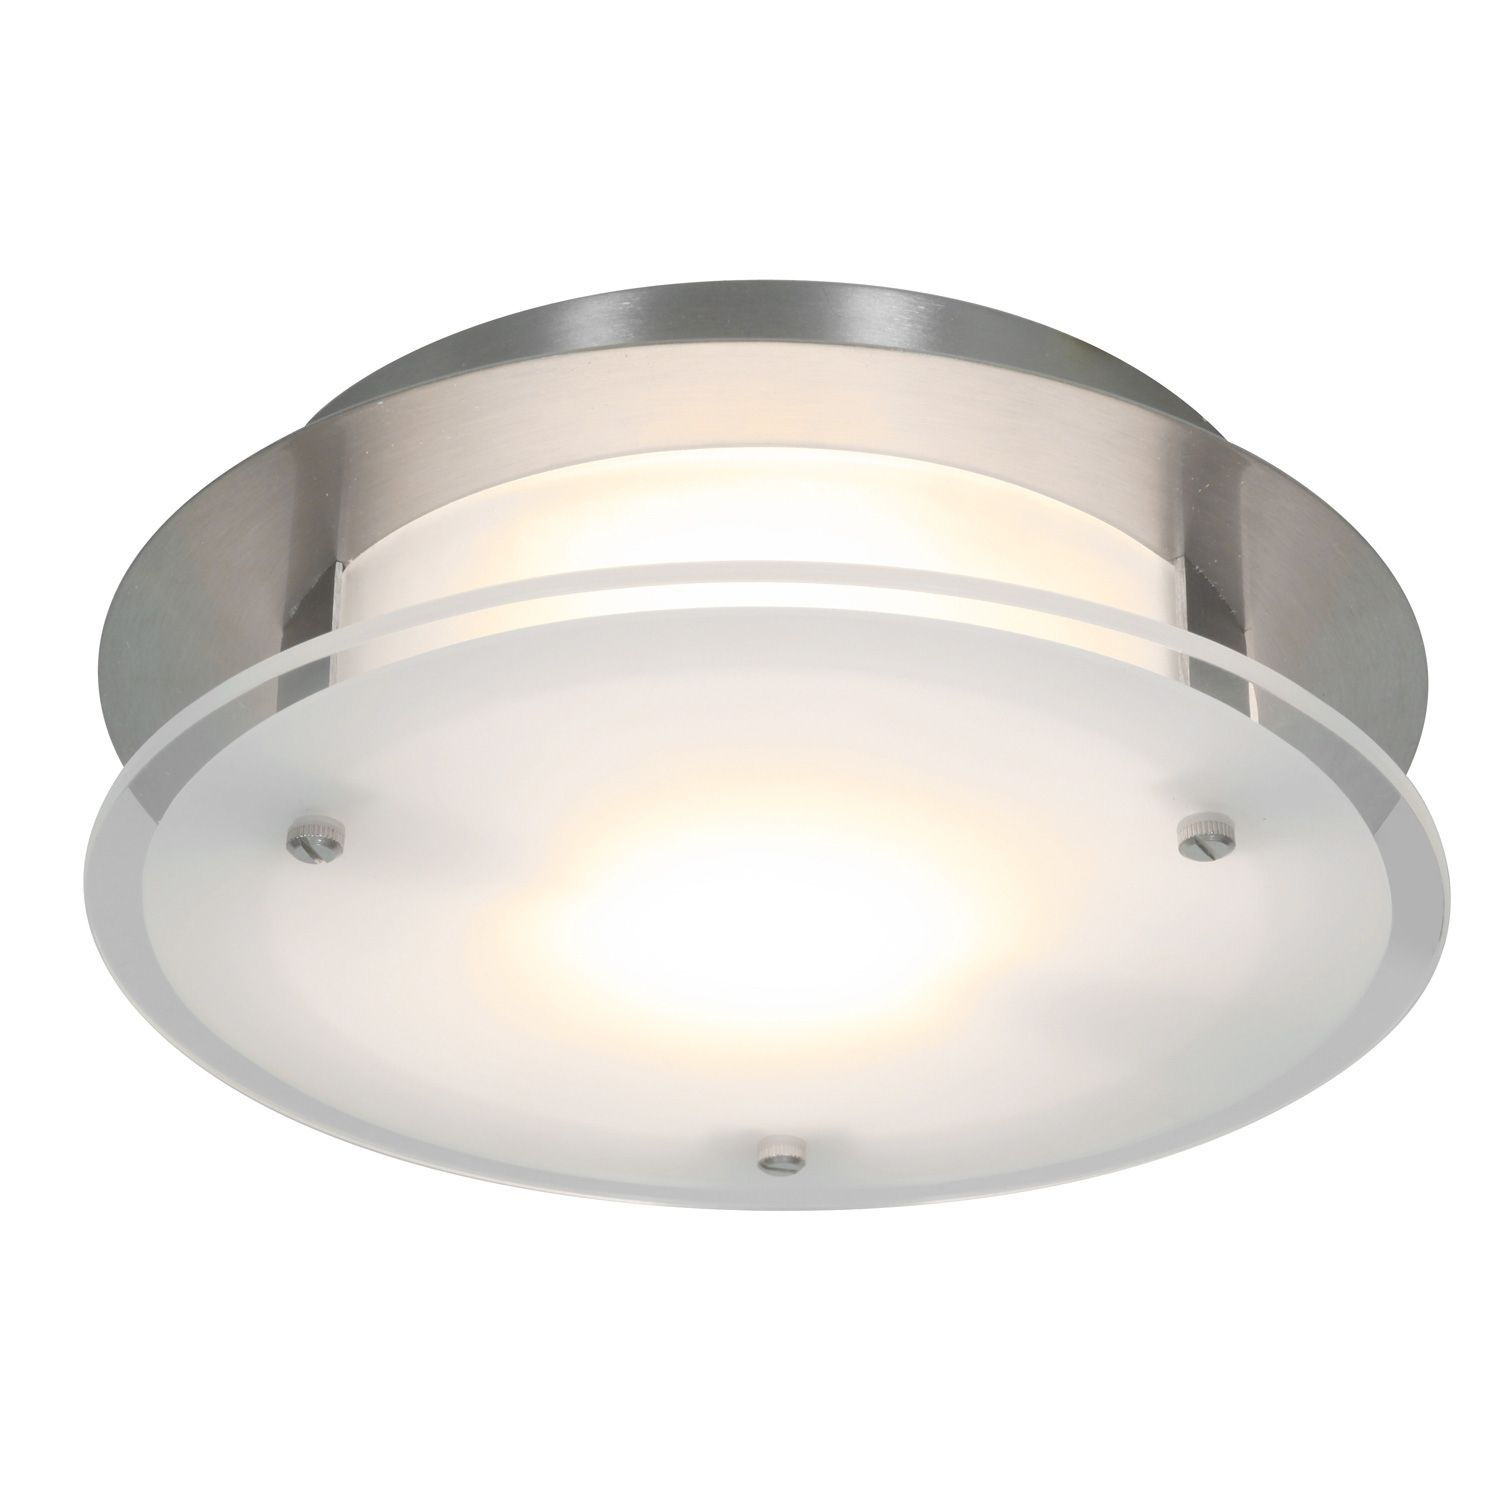 Nutone bathroom fan light fixture httponlinecompliancefo nutone bathroom fan light fixture arubaitofo Images